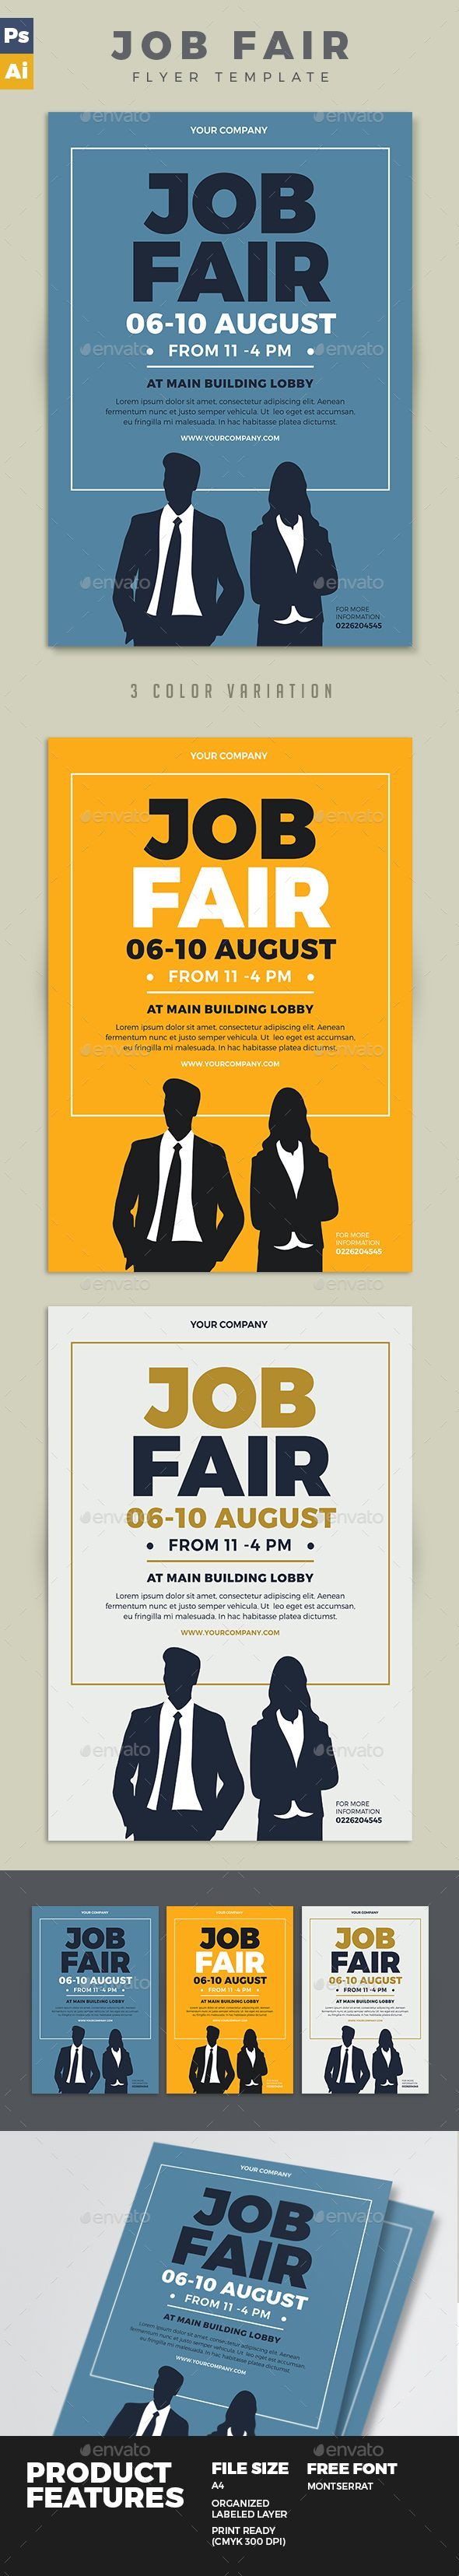 Job Fair Flyer  Job Fair Psd Templates And Template